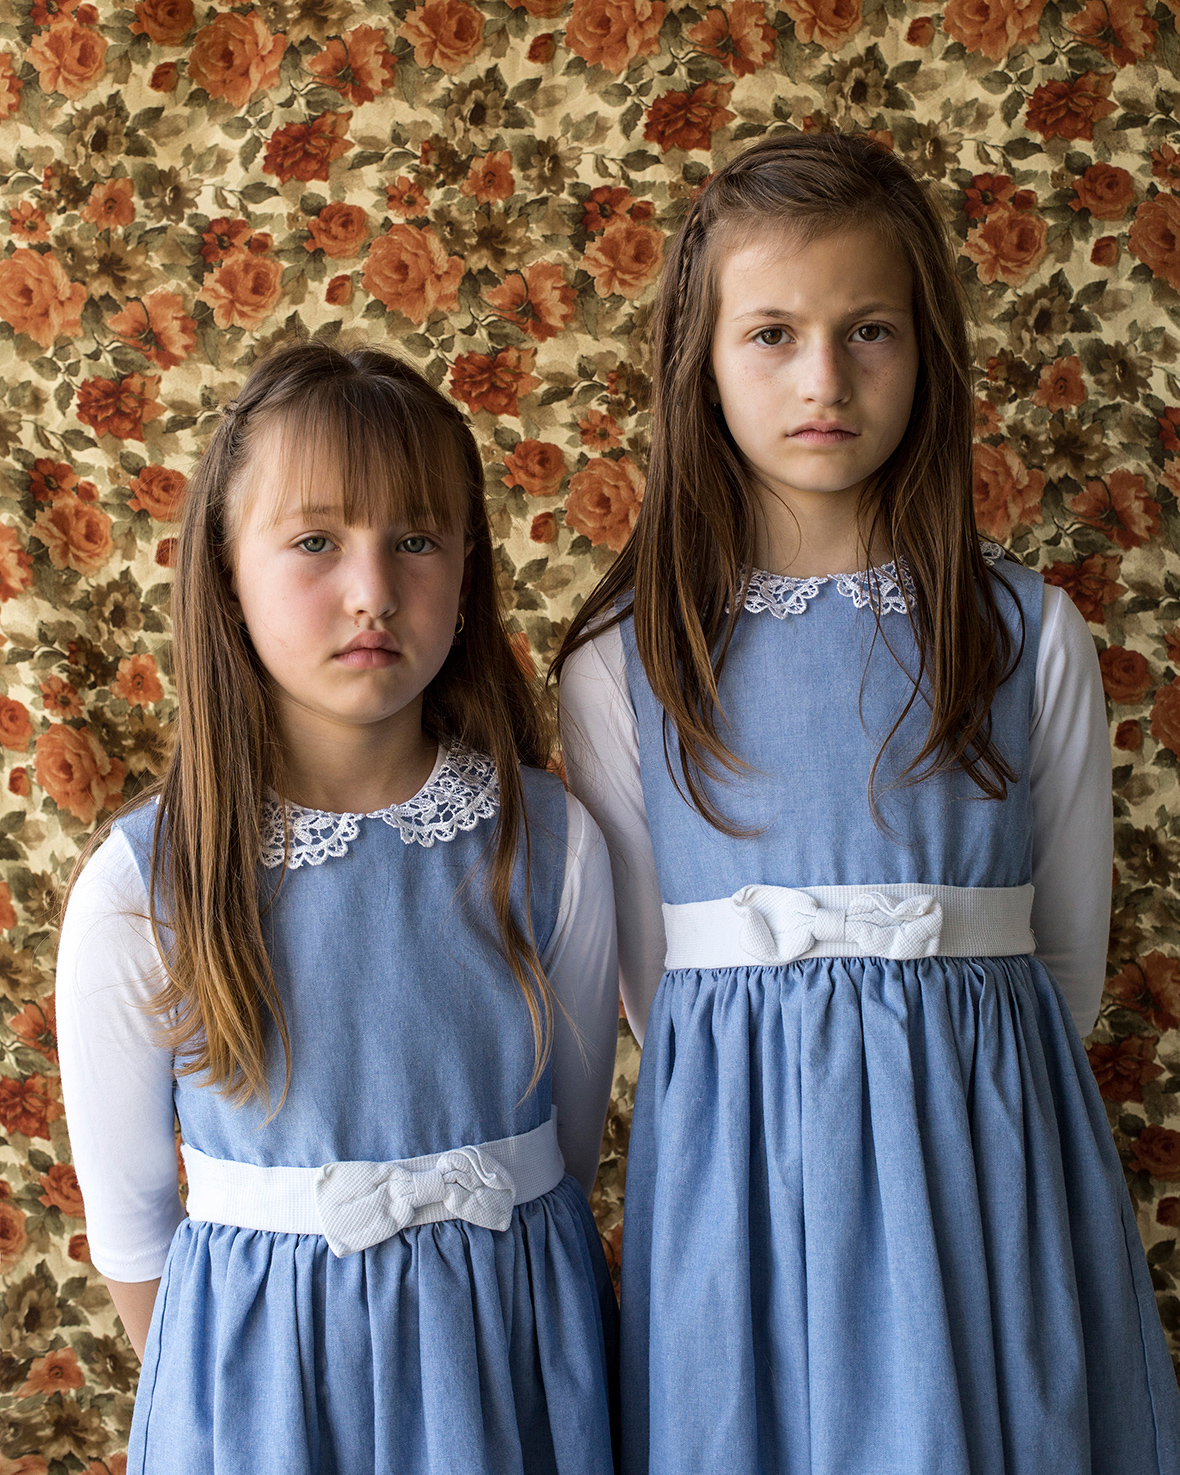 Taylor Wessing Photographic Prize 2016